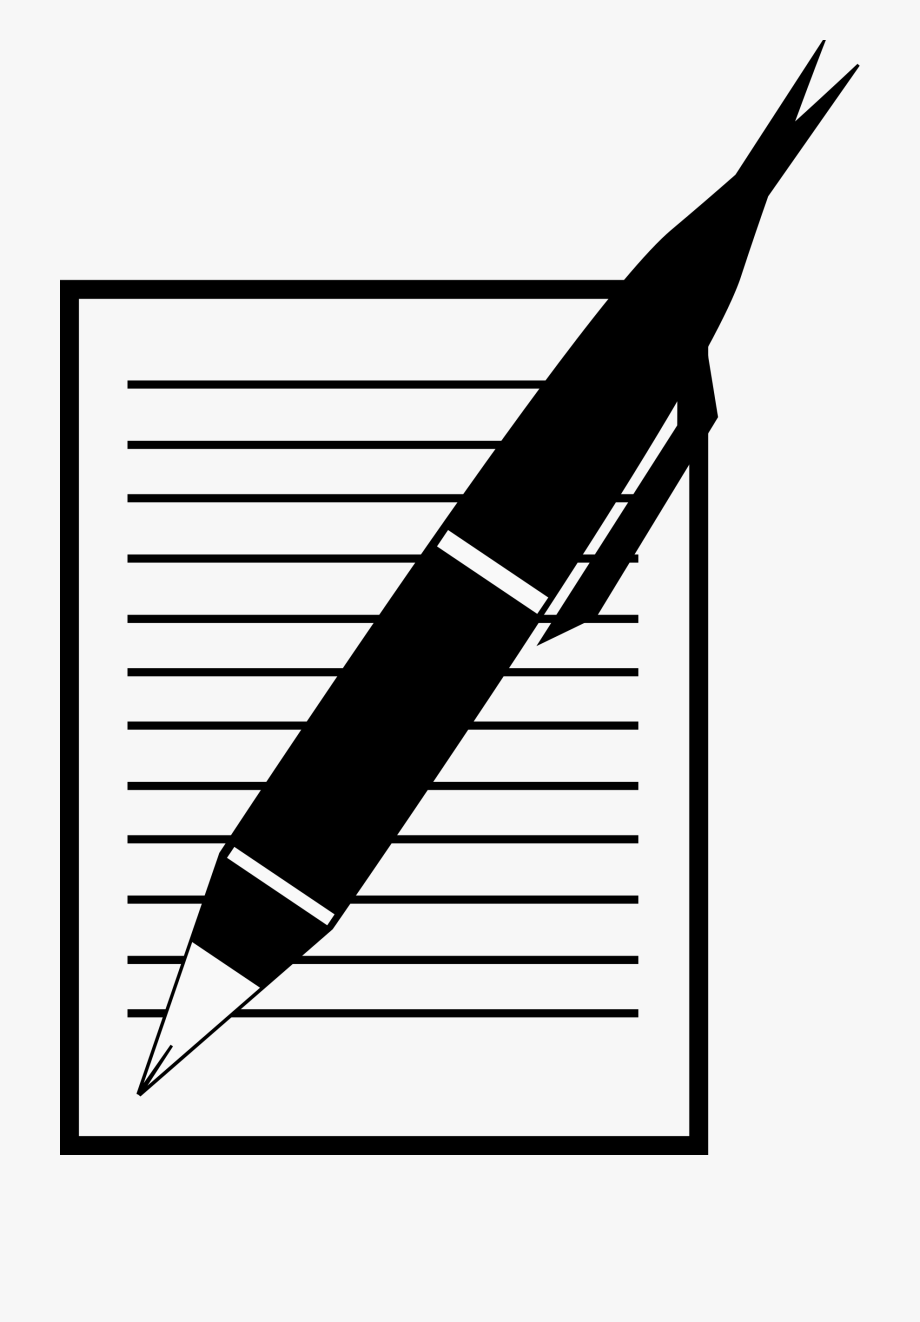 Pen And Paper Png - 28 Collection Of Pen And Paper Clipart Black And White - Pencil ...